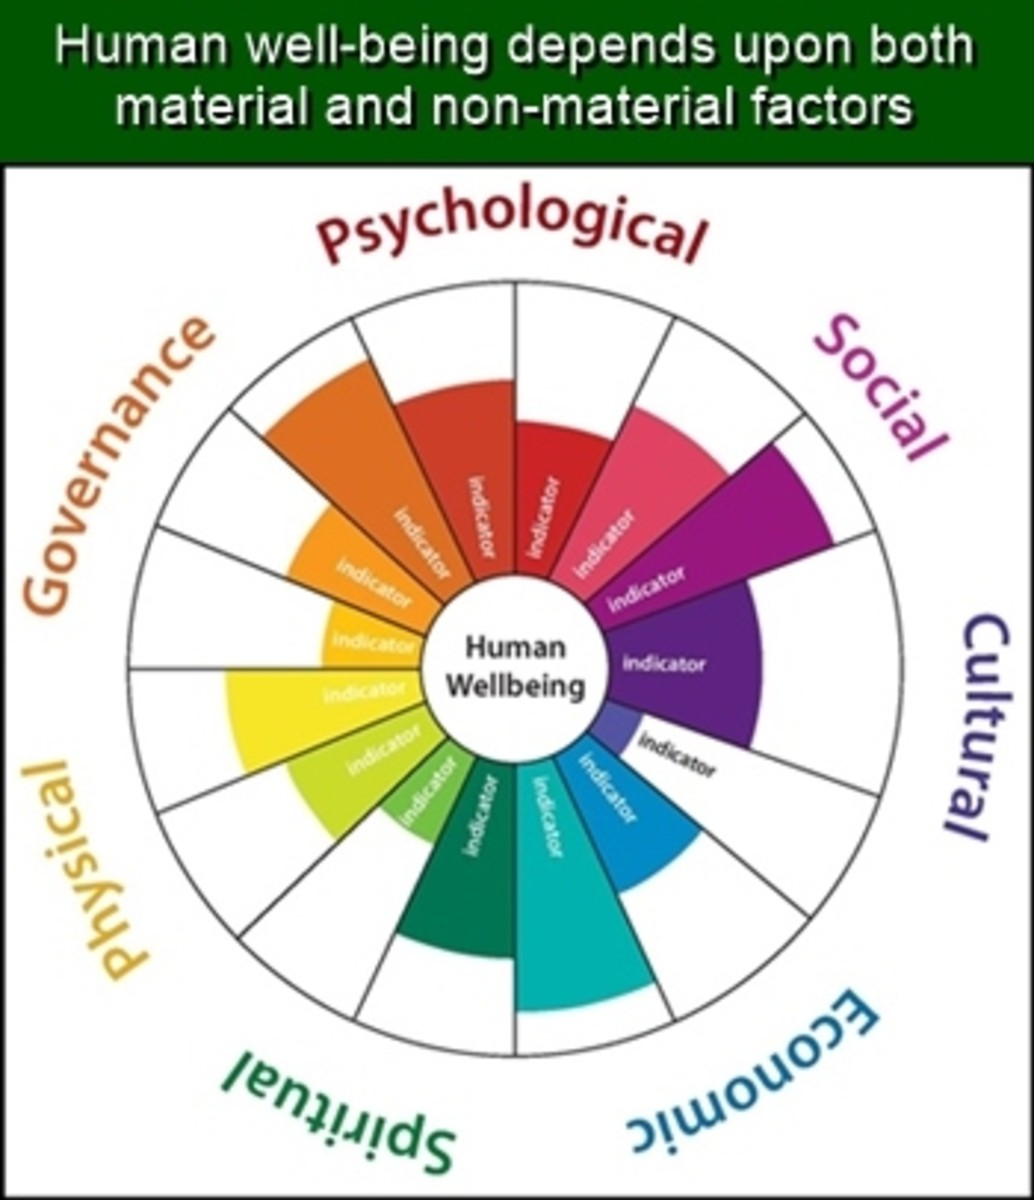 Human well-being is multidimensional.